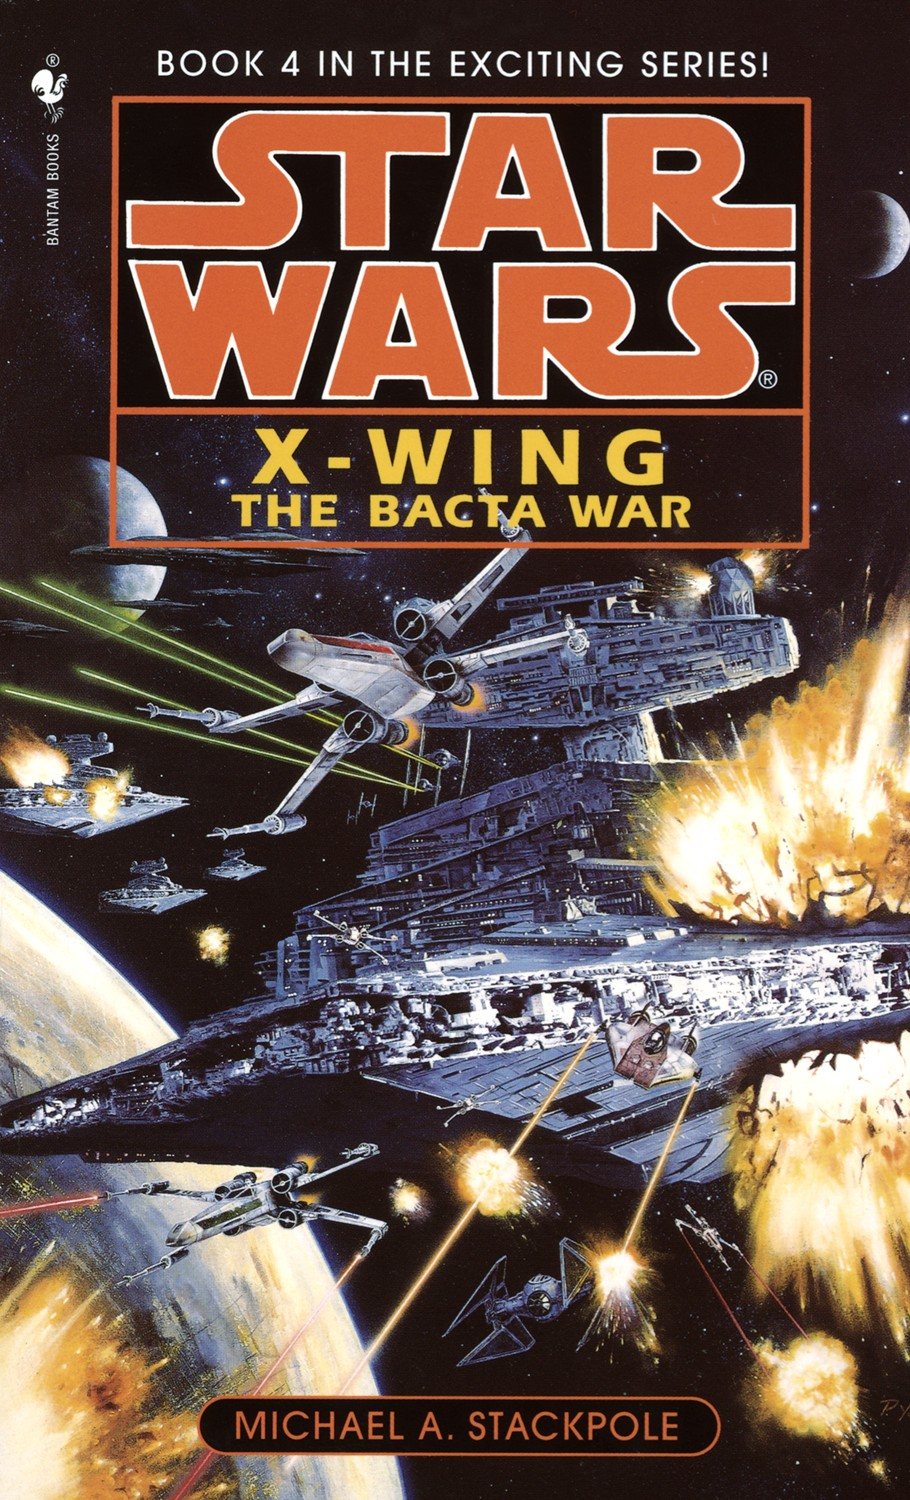 Star Wars X-Wing Series Book 3 the Krytos Trap